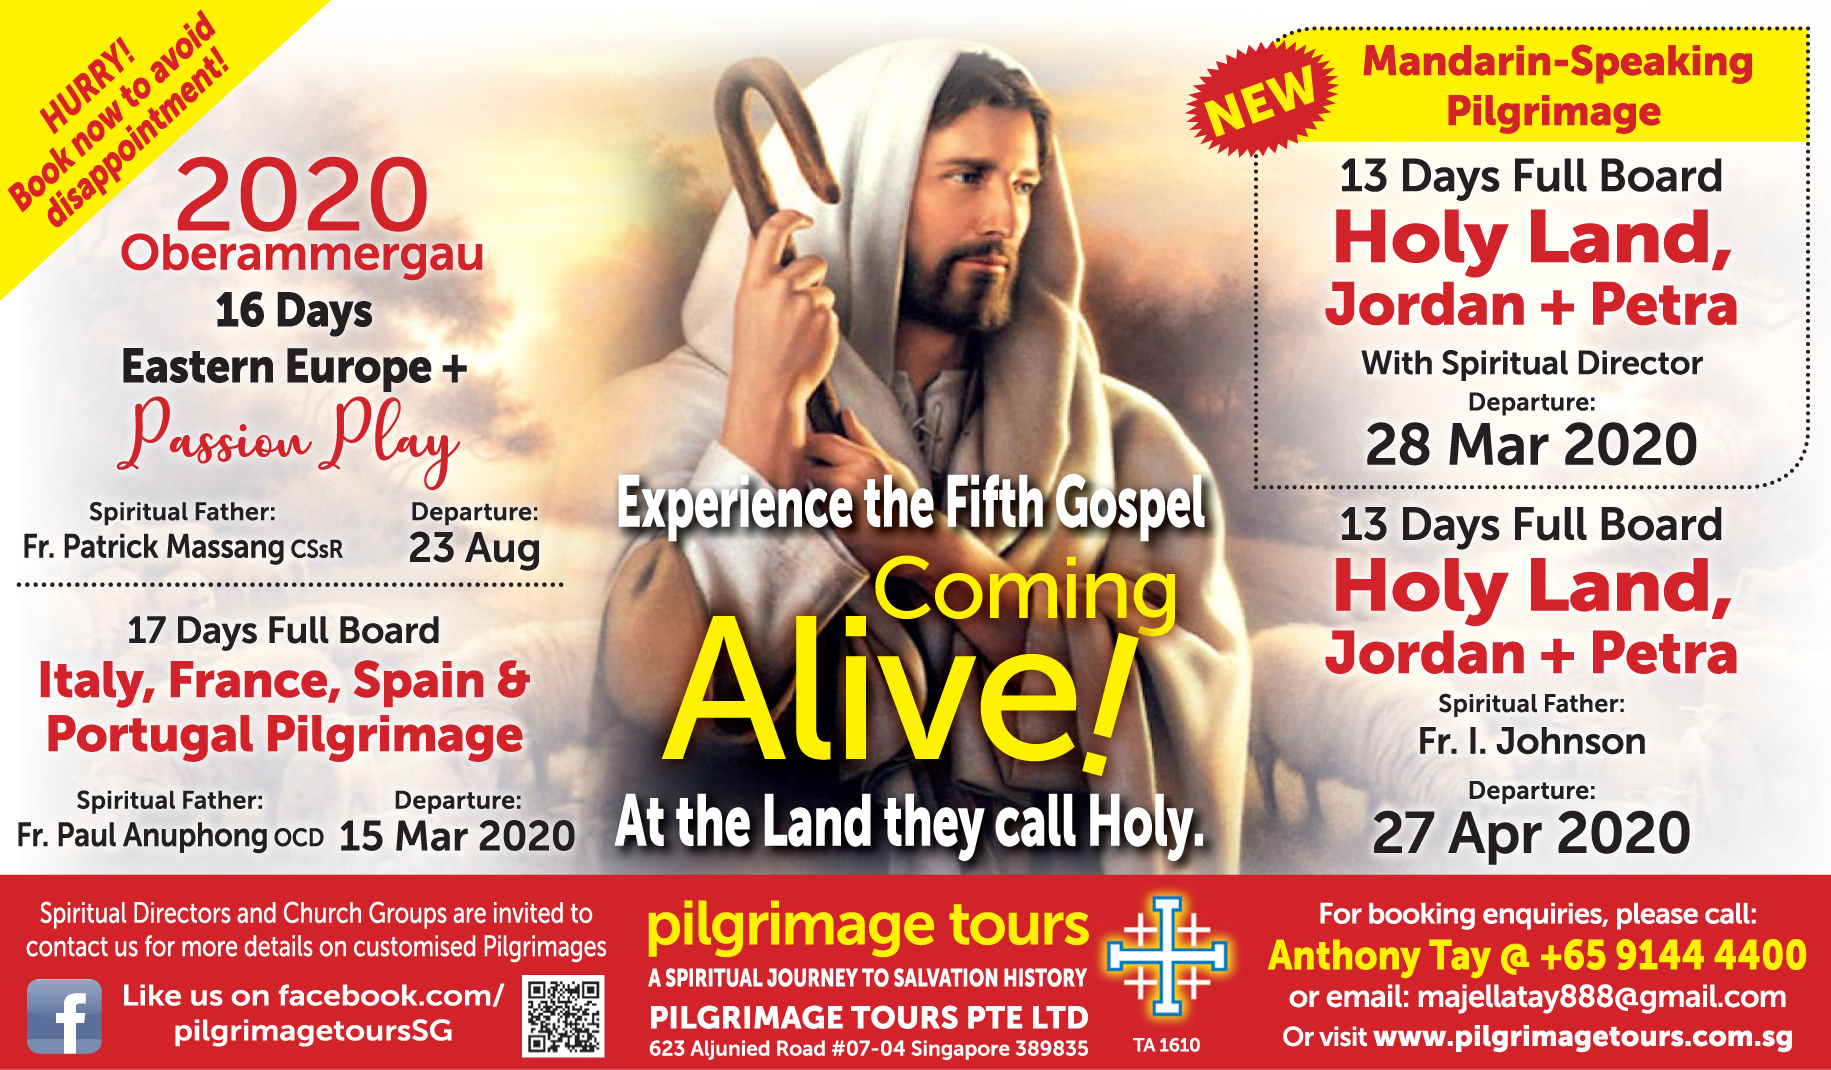 Chinese Holy Land Pilgrimage Italy France Spain Portugal Oberammergau Eastern Europe